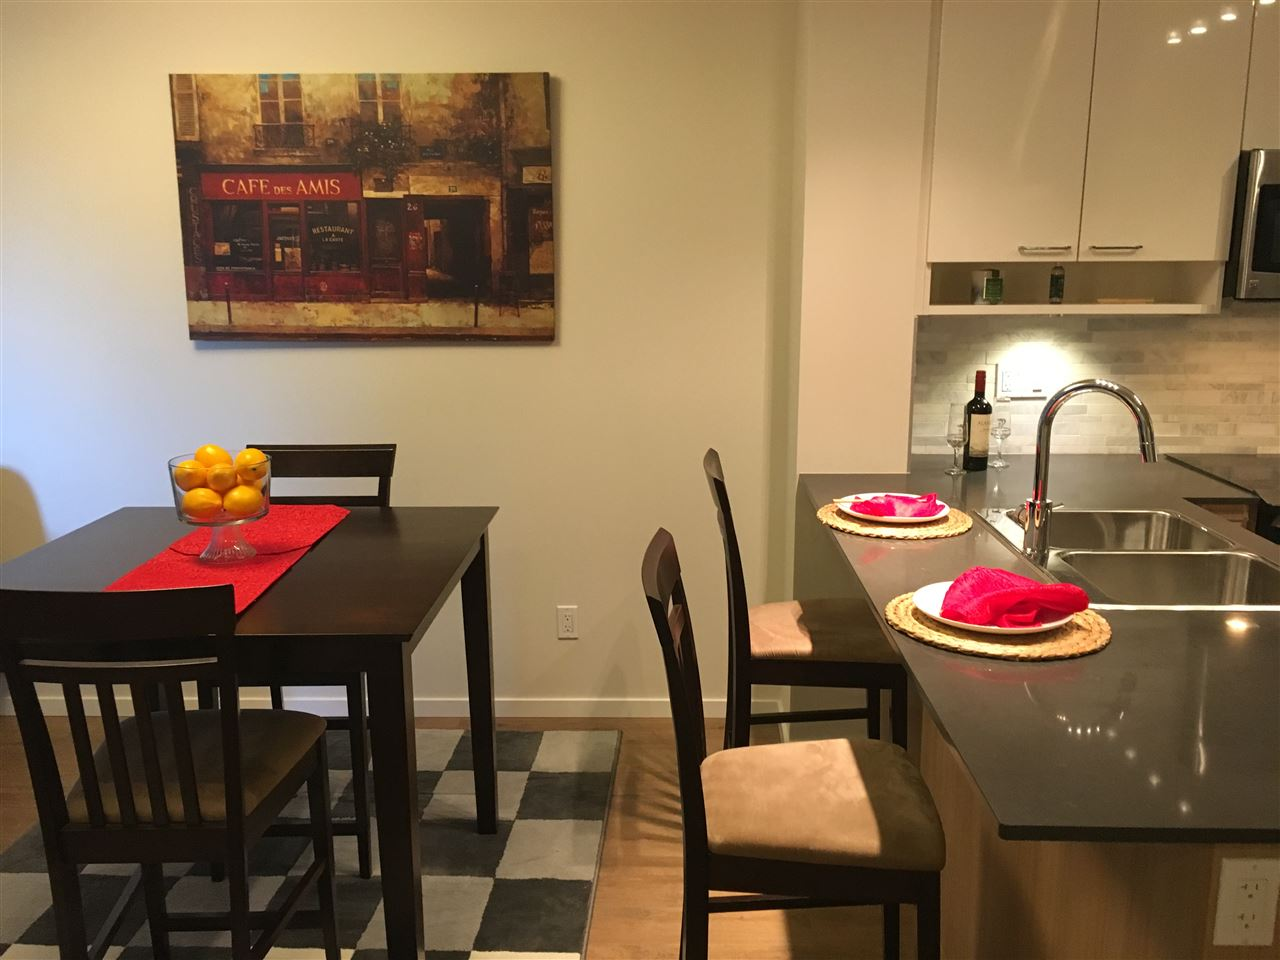 Beautiful 3 year old 1 bedroom, 1 bath + den apartment in  central Maillardville, near transit and shops.  Stone counter tops.  Comes with 1 parking stall and 1 storage locker. Rentals allowed and pets allowed.  Remainder of 2/5/10 Home Wararnty.  Come and See! Open House Sunday, Oct 15th 1-3pm.